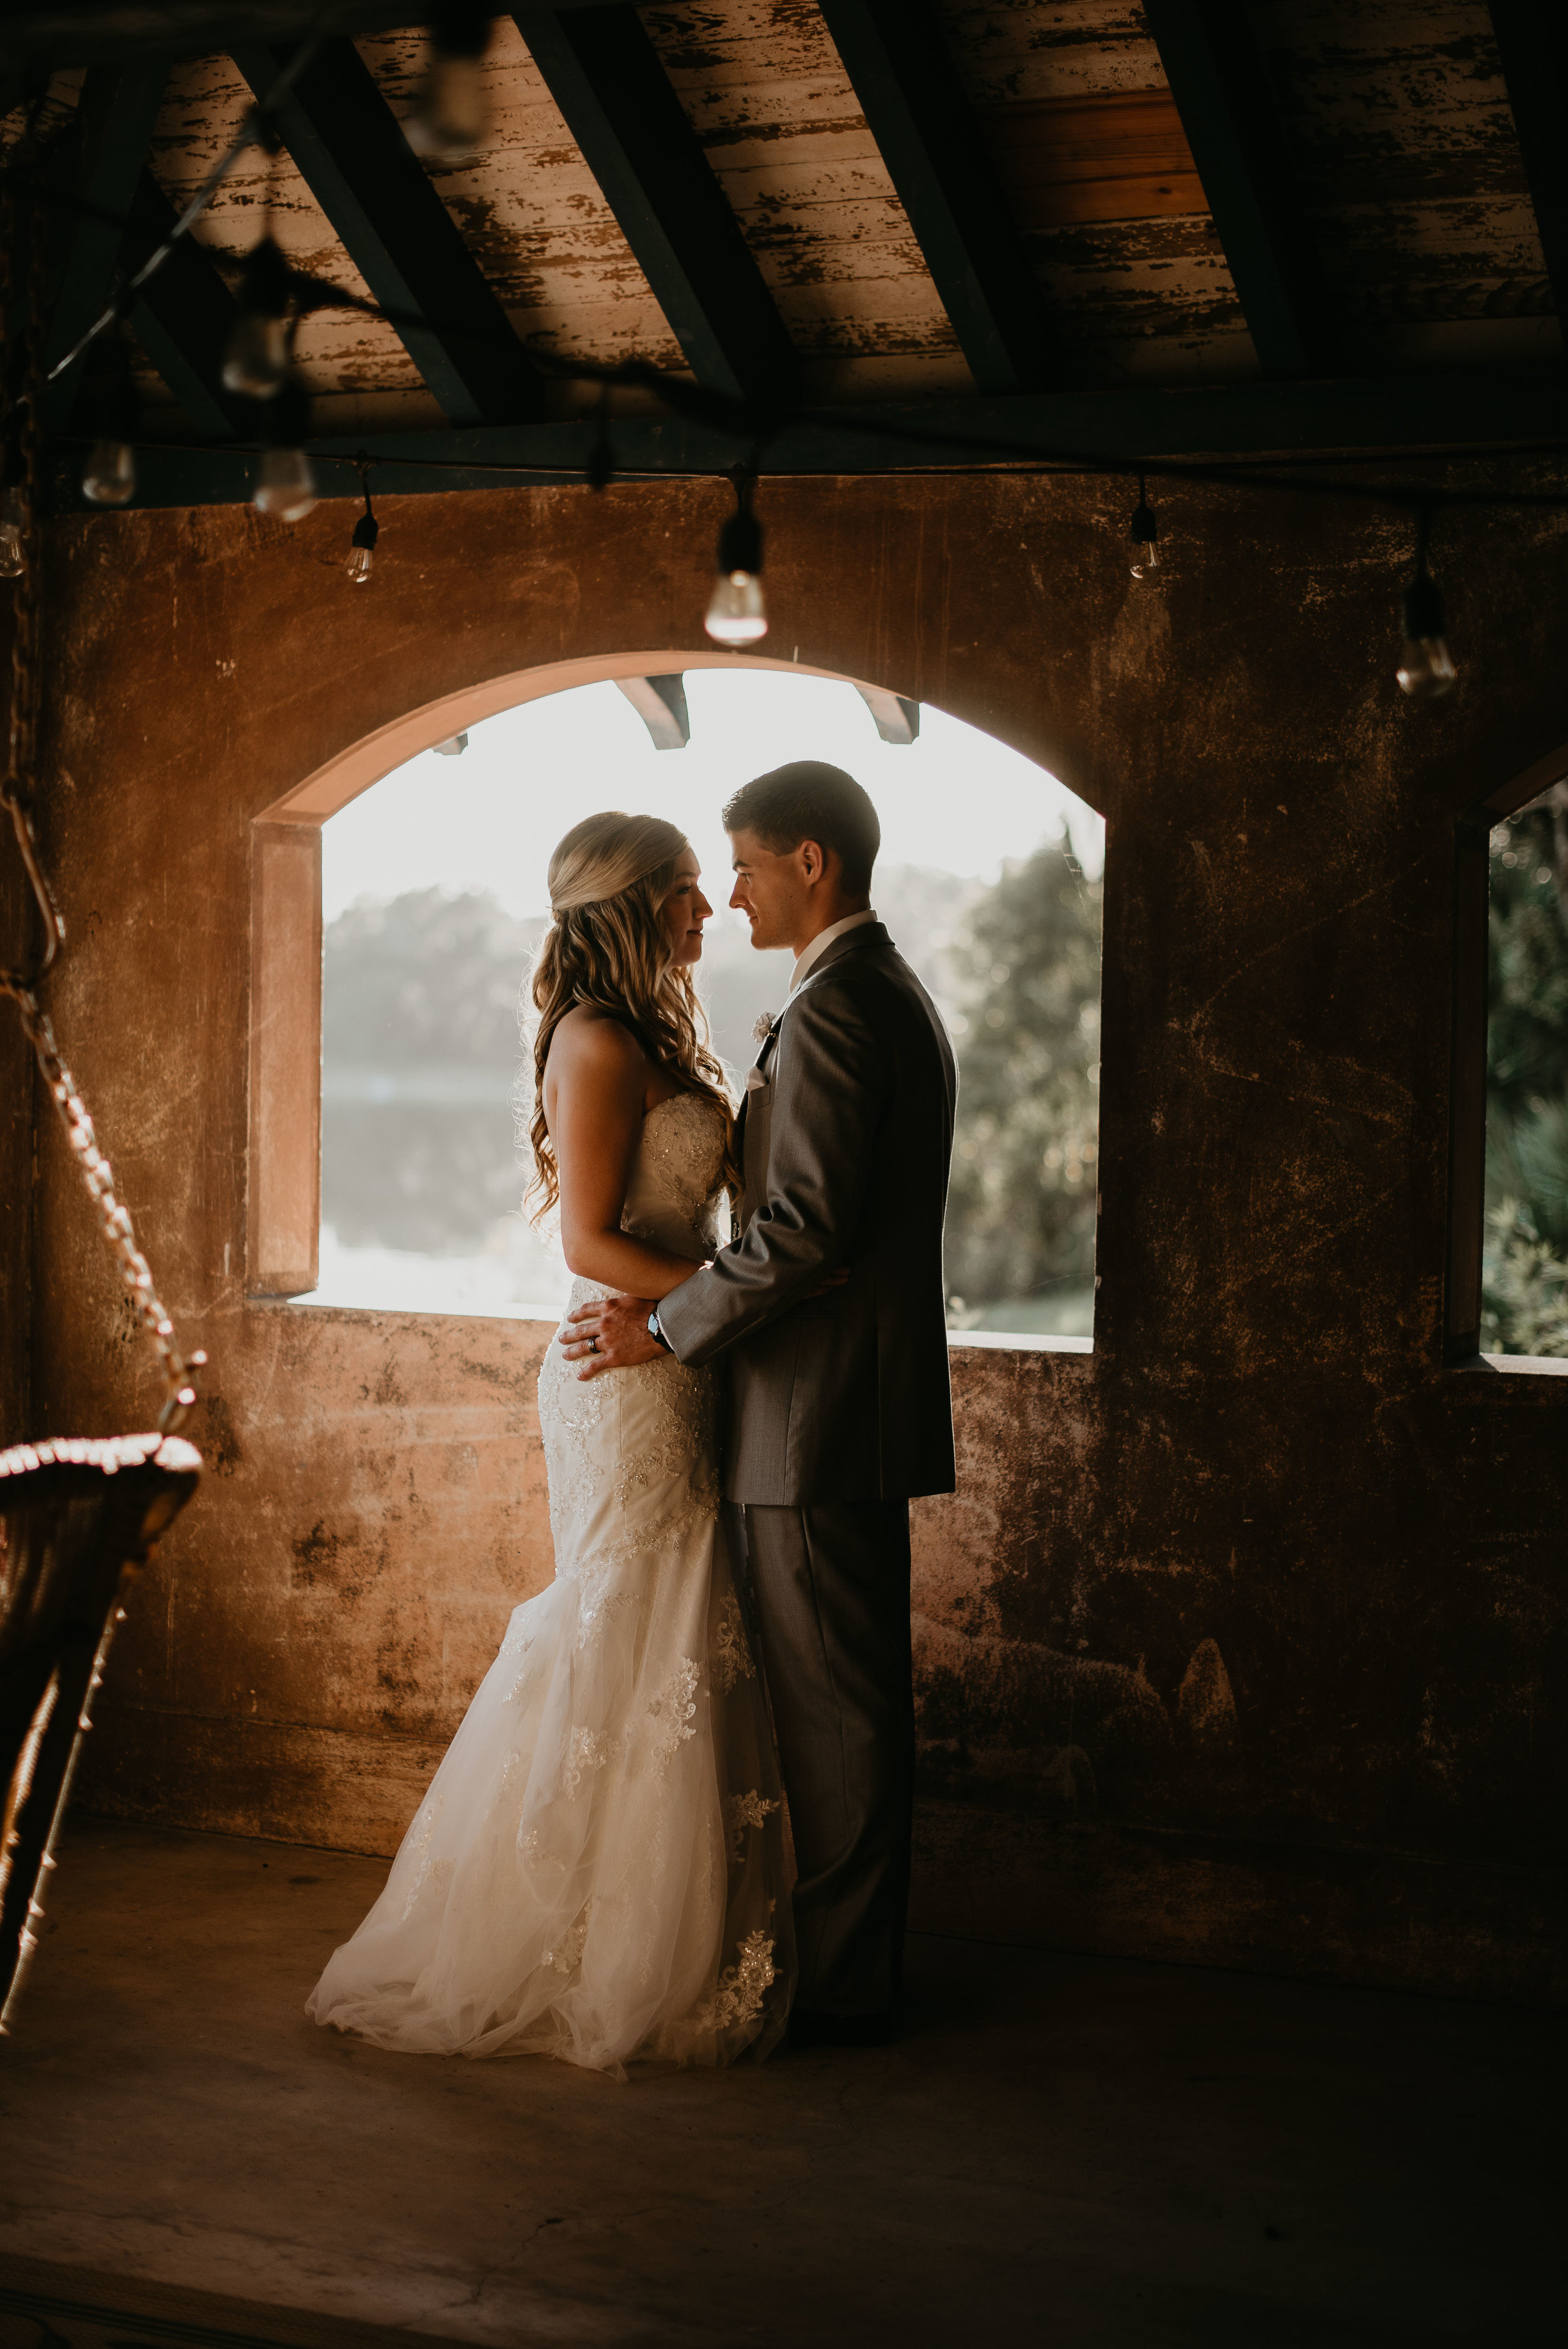 Bride and groom holding each other during sunset at Sydonie Mansion in Mt. Dora, FL